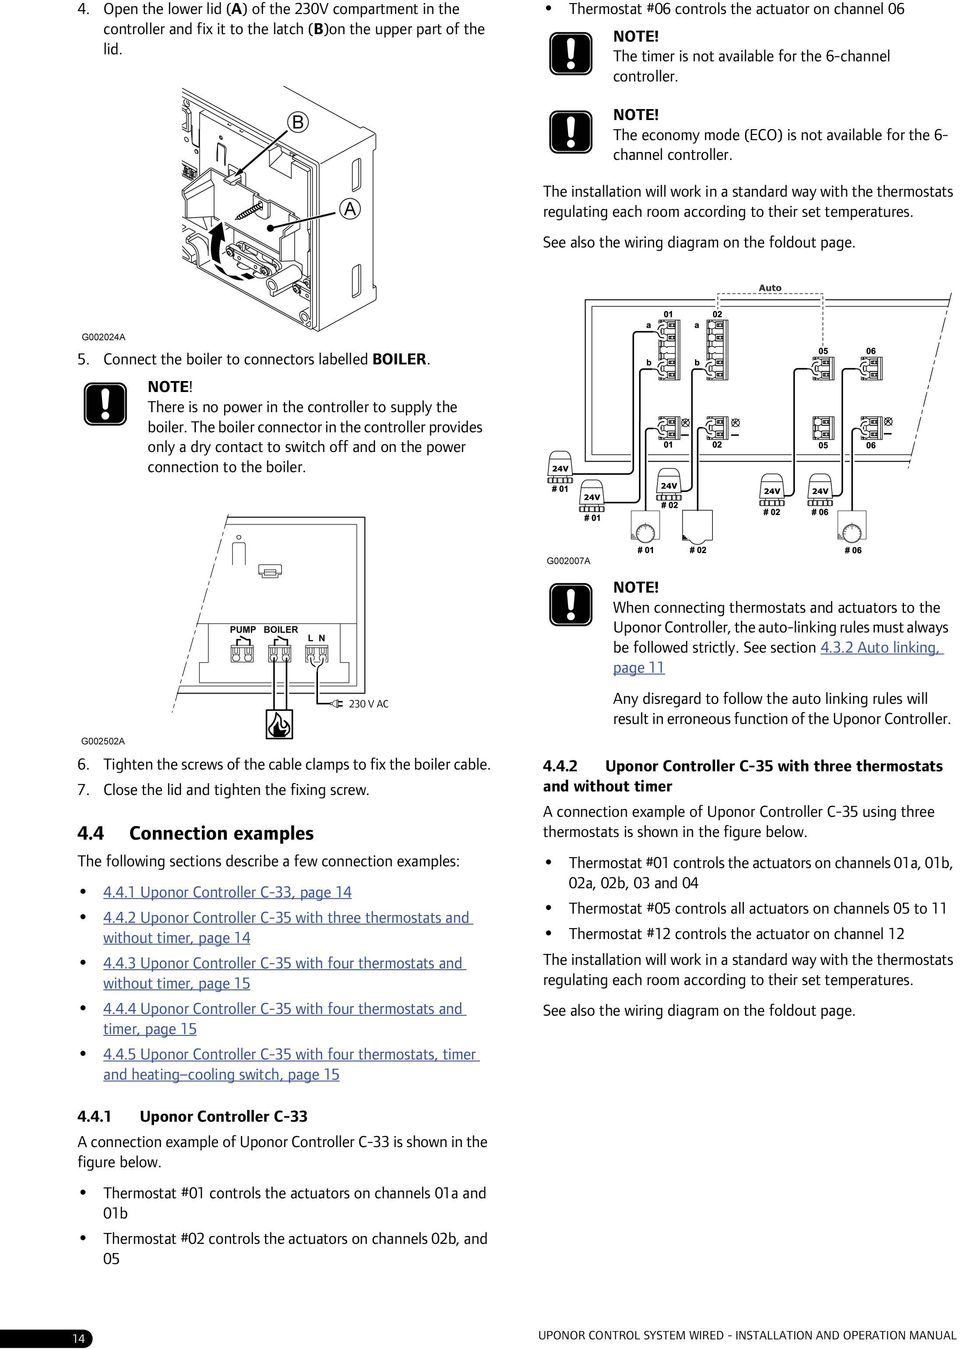 Indoor Climate Uponor Control System Wired Installation And Wiring Diagram For Tado Thermostat The Will Work In A Standard Way With Thermostats Regulating Each Room According To